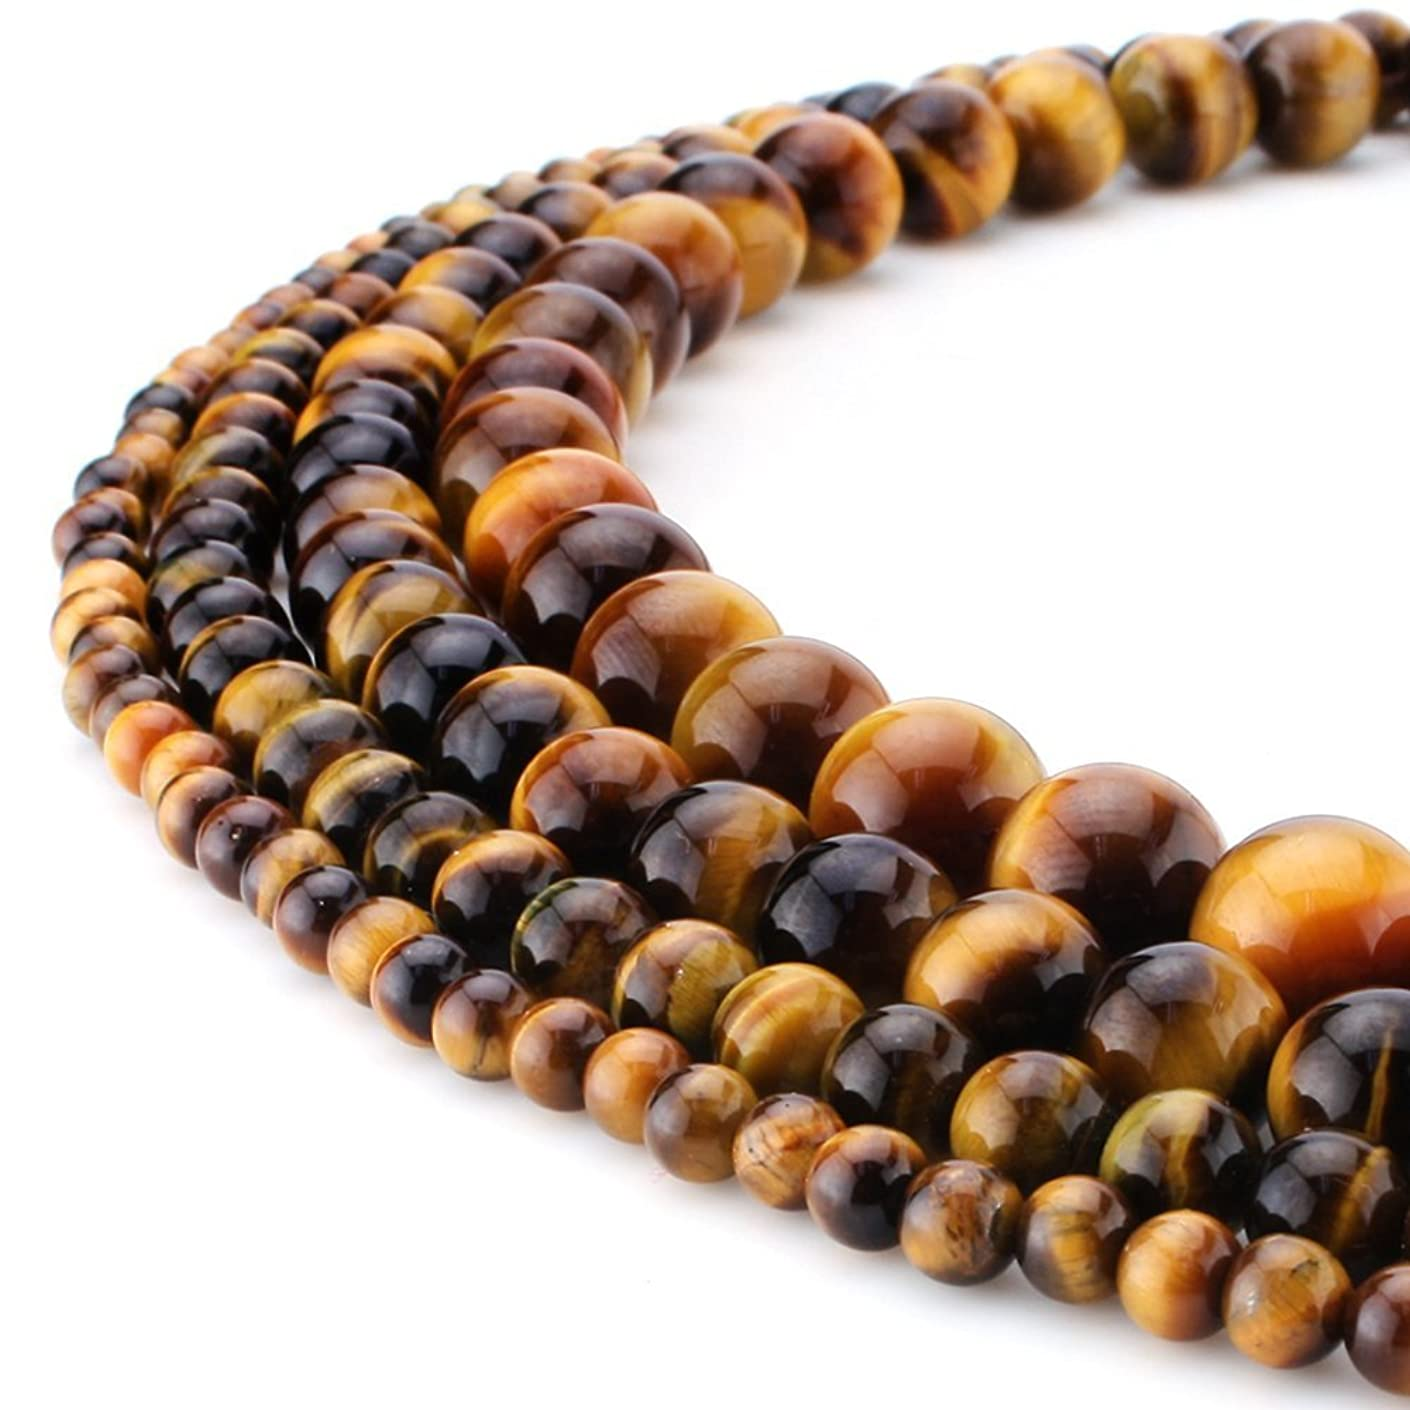 RUBYCA Wholesale Natural Tiger-Eye Gemstone Round Loose Beads for DIY Jewelry Making 1 Strand - 8mm